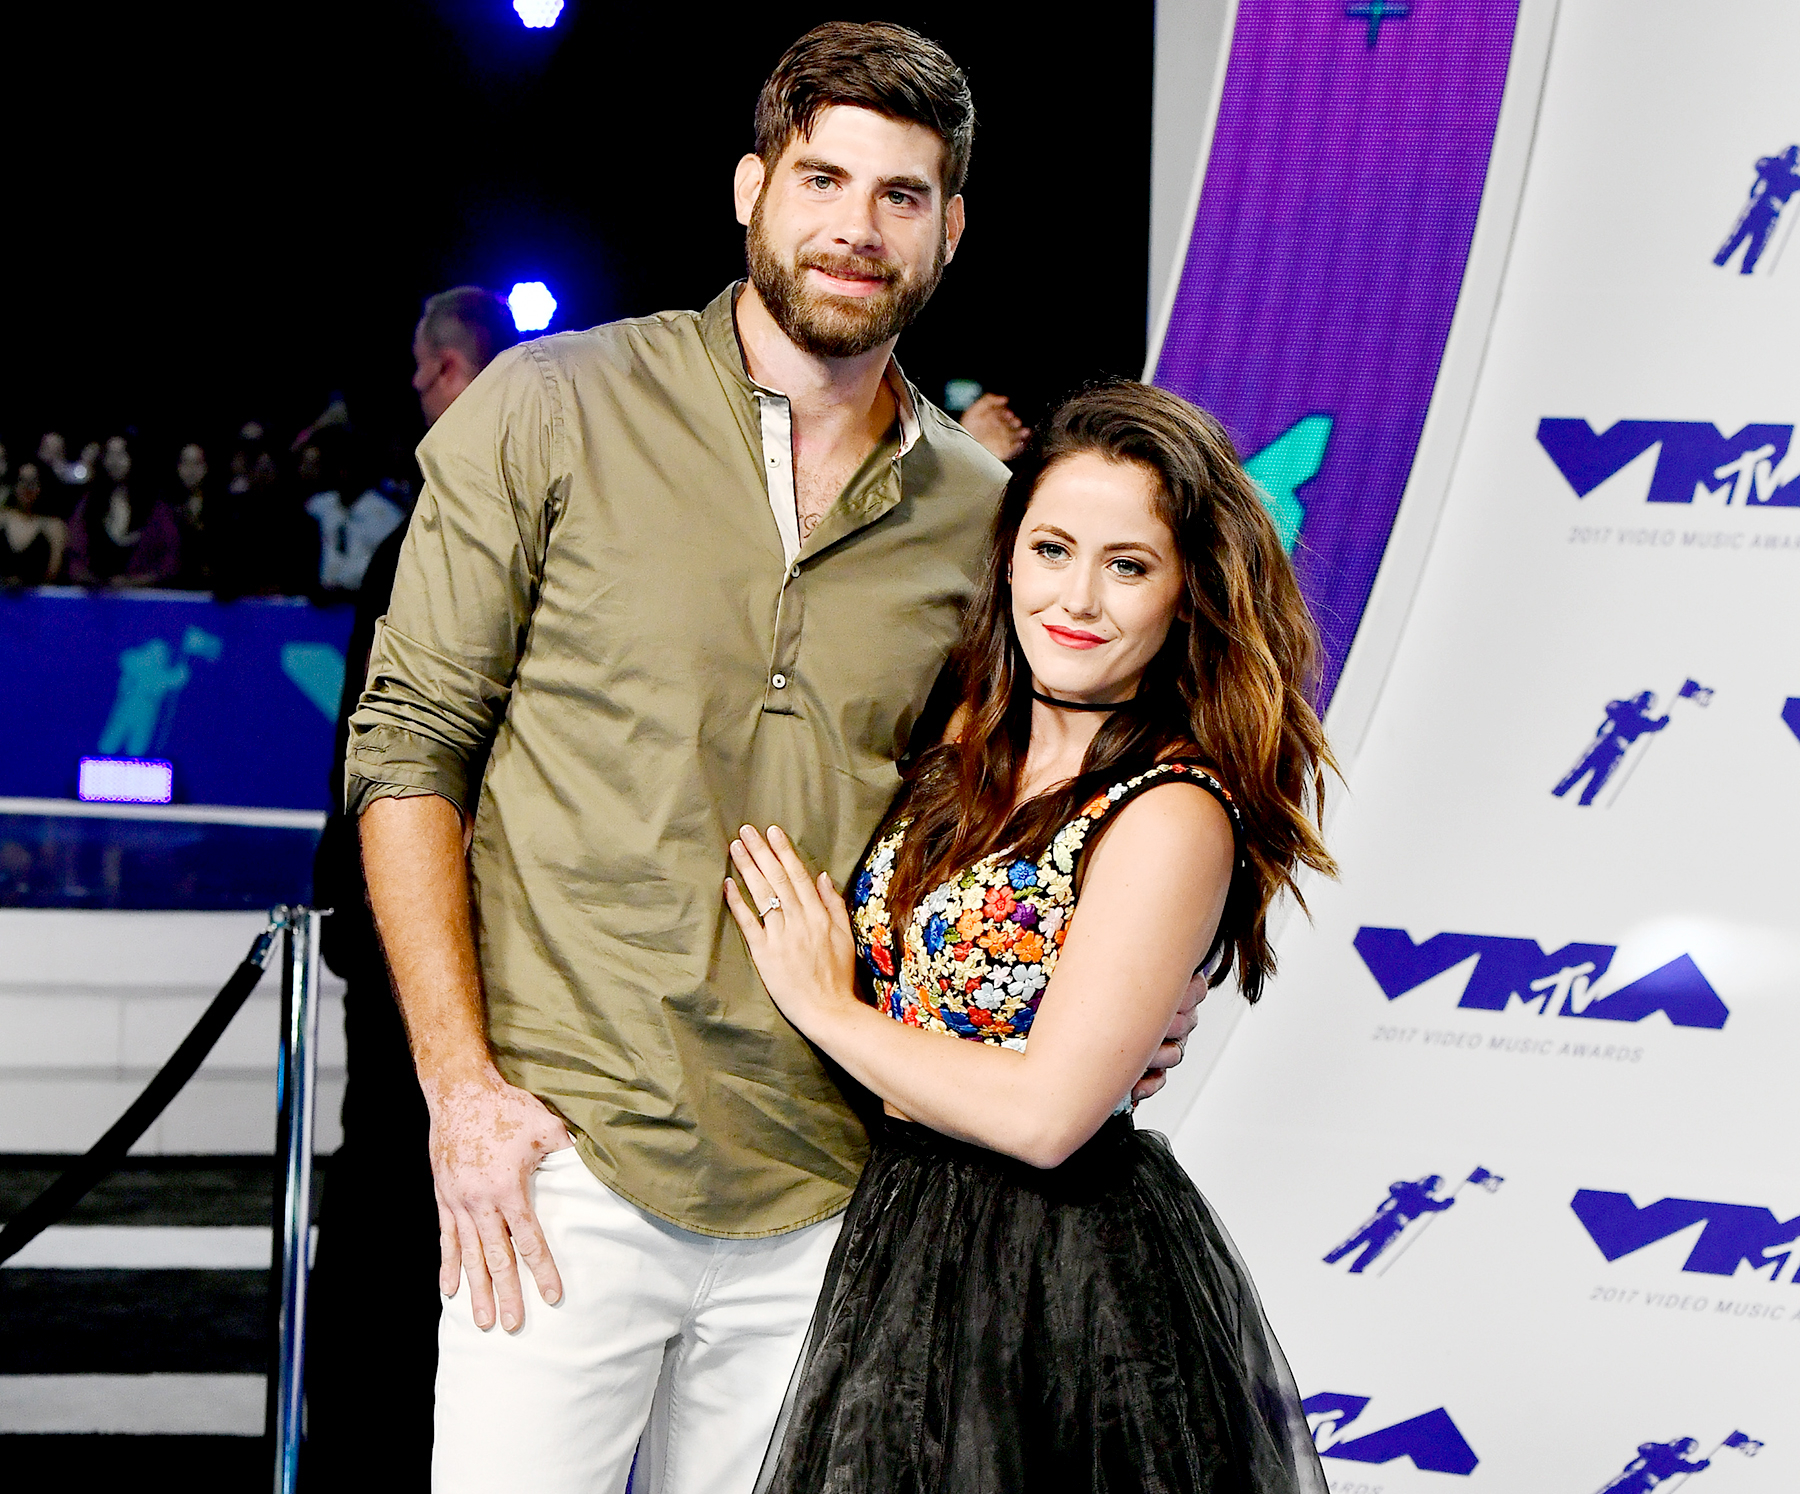 David Eason and Jenelle Evans attend the 2017 MTV Video Music Awards at The Forum on August 27, 2017 in Inglewood, California.